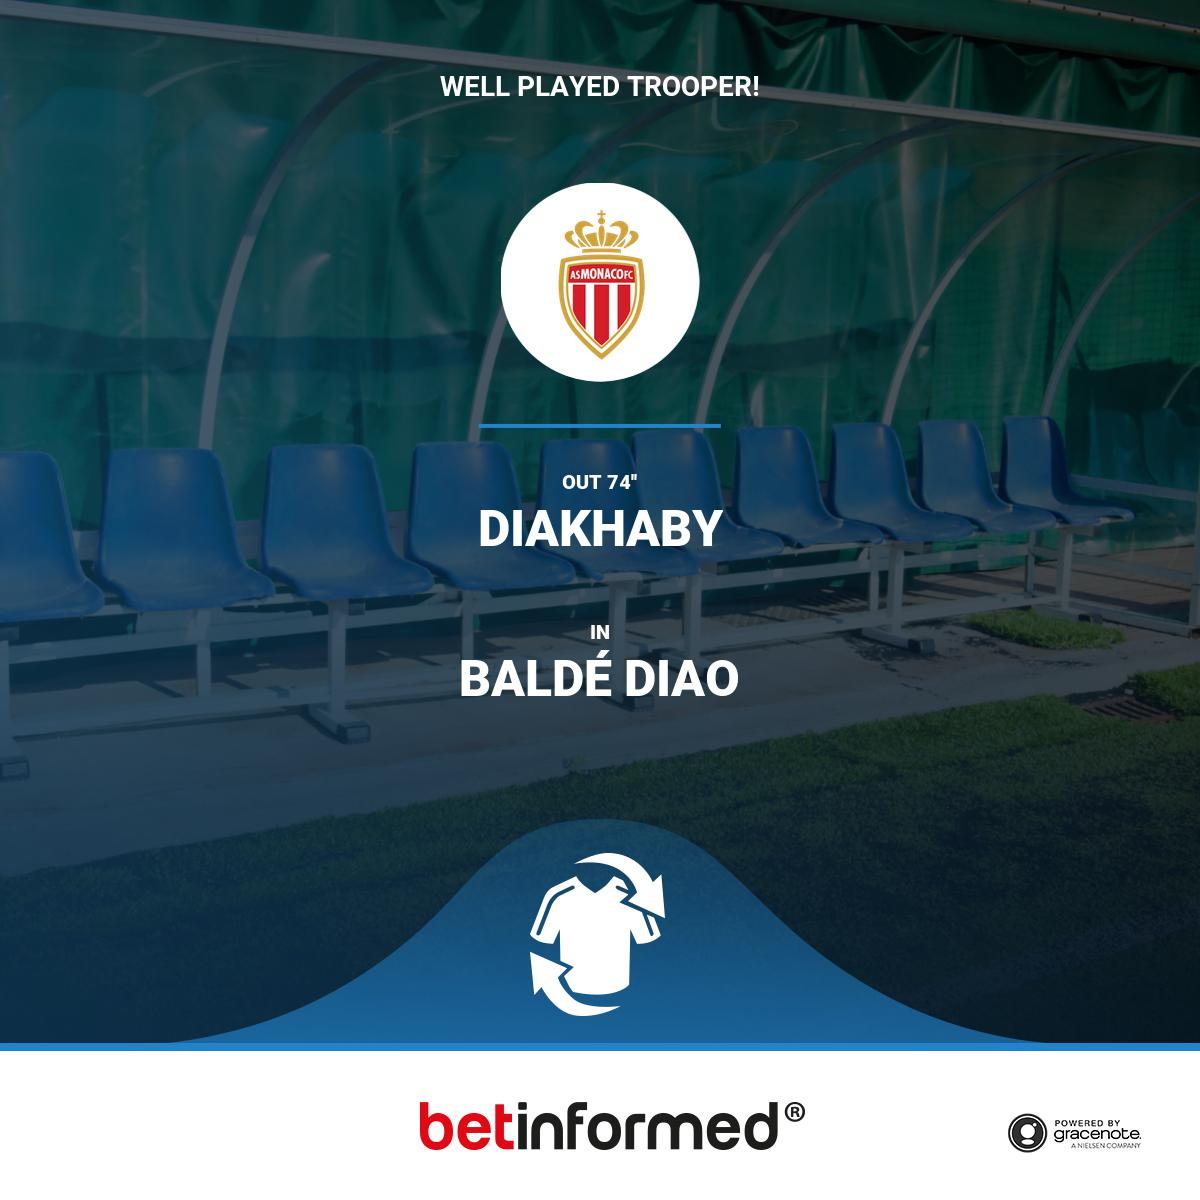 Are you excited to see Baldé Diao play? Will this change the match outcome you think? #ASMASSE, #asmonaco $team_b_hashtags #UCL<br>http://pic.twitter.com/sMd54sdT4x